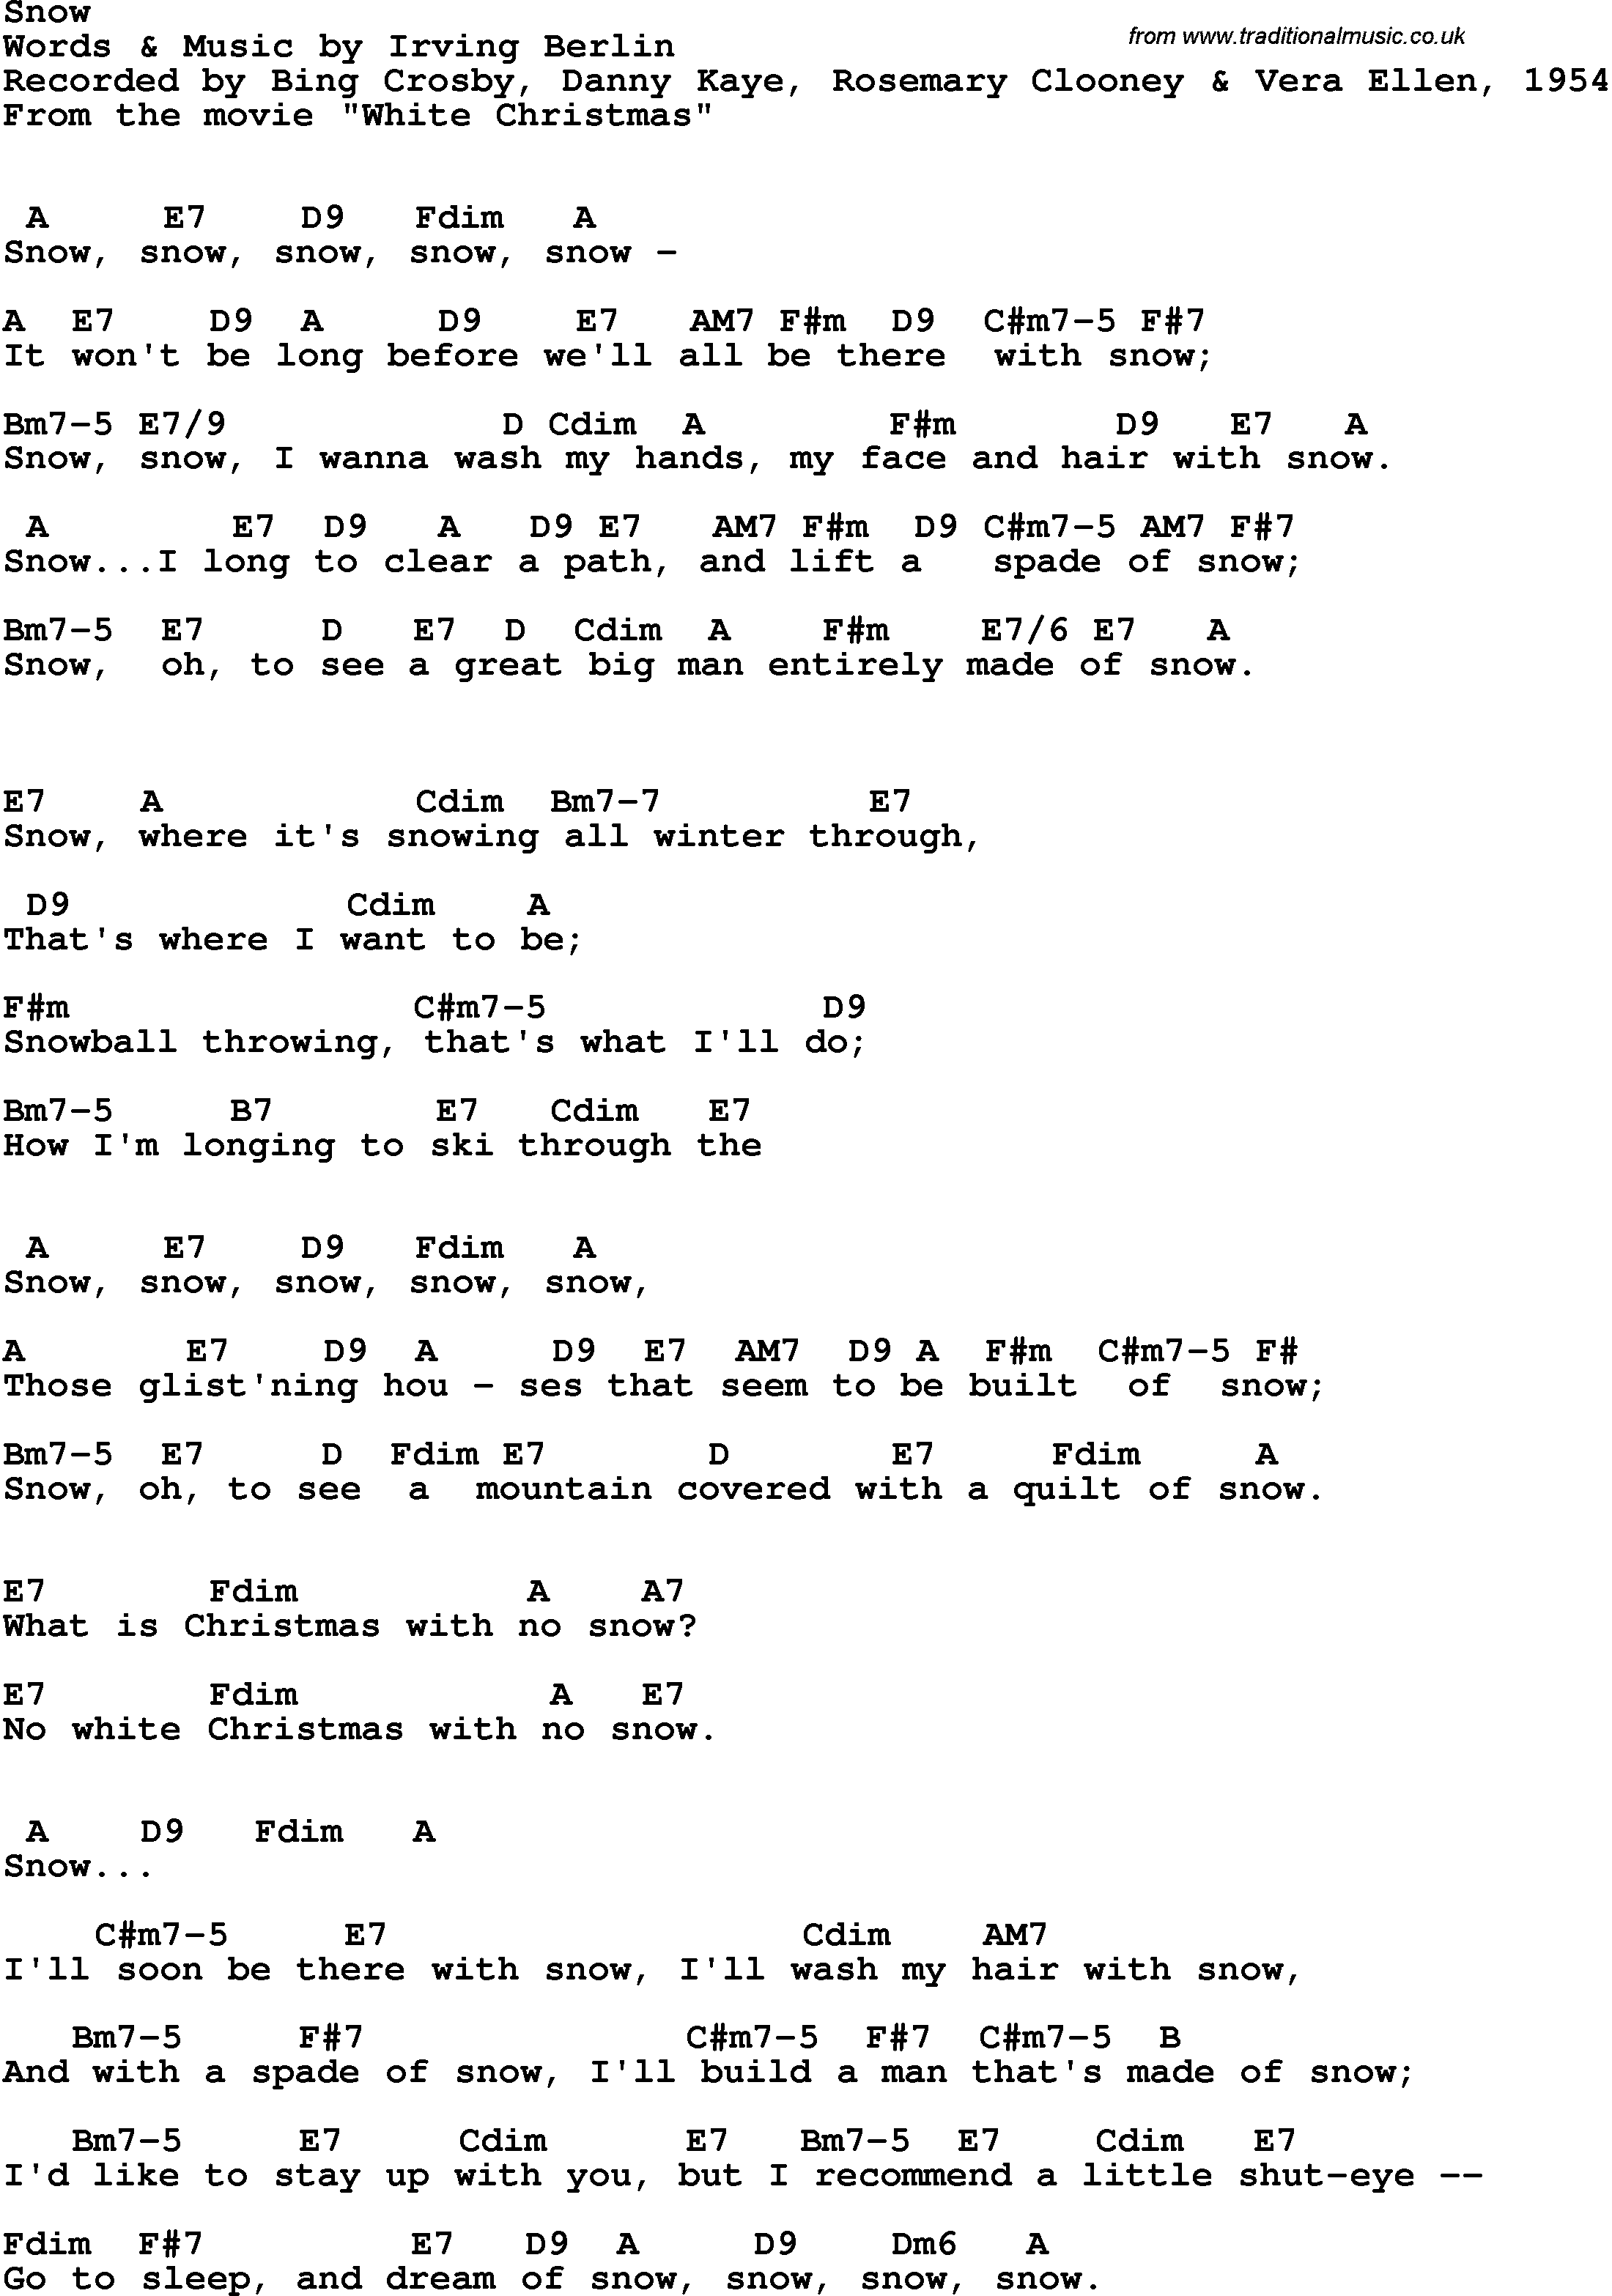 song lyrics with guitar chords for snow bing crosby danny kaye rosemary clooney